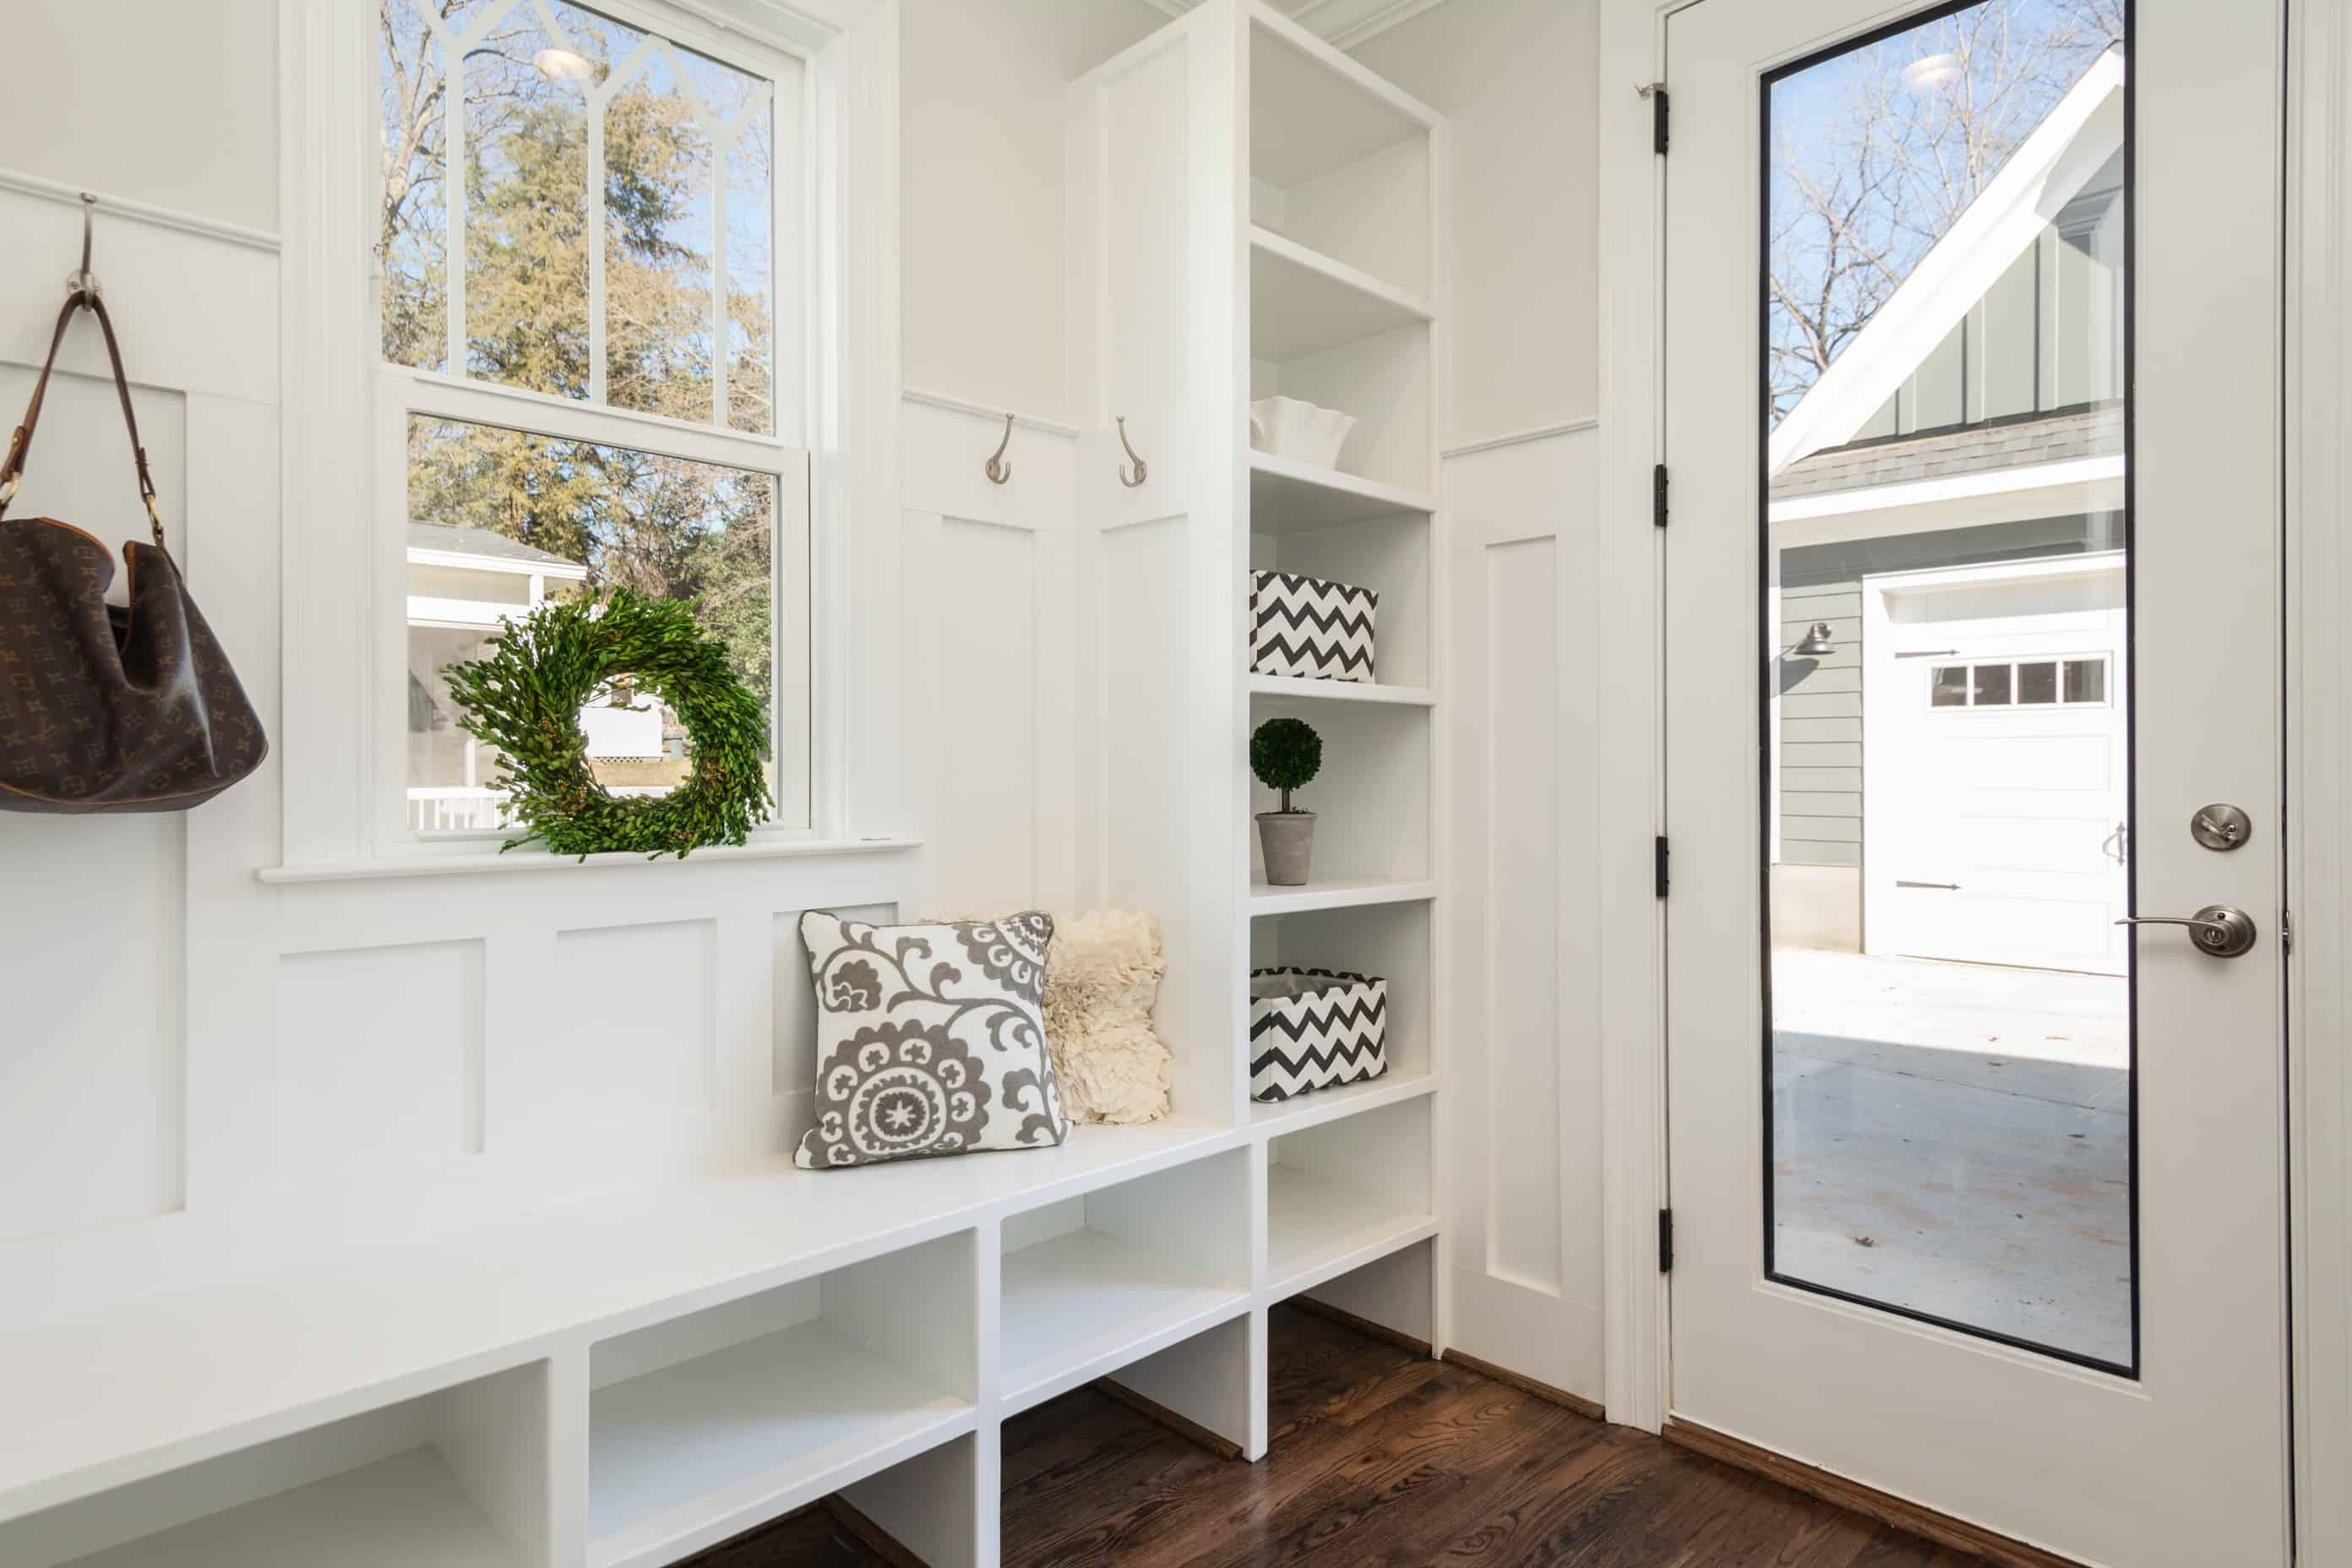 Home idea, mudroom or entryway.